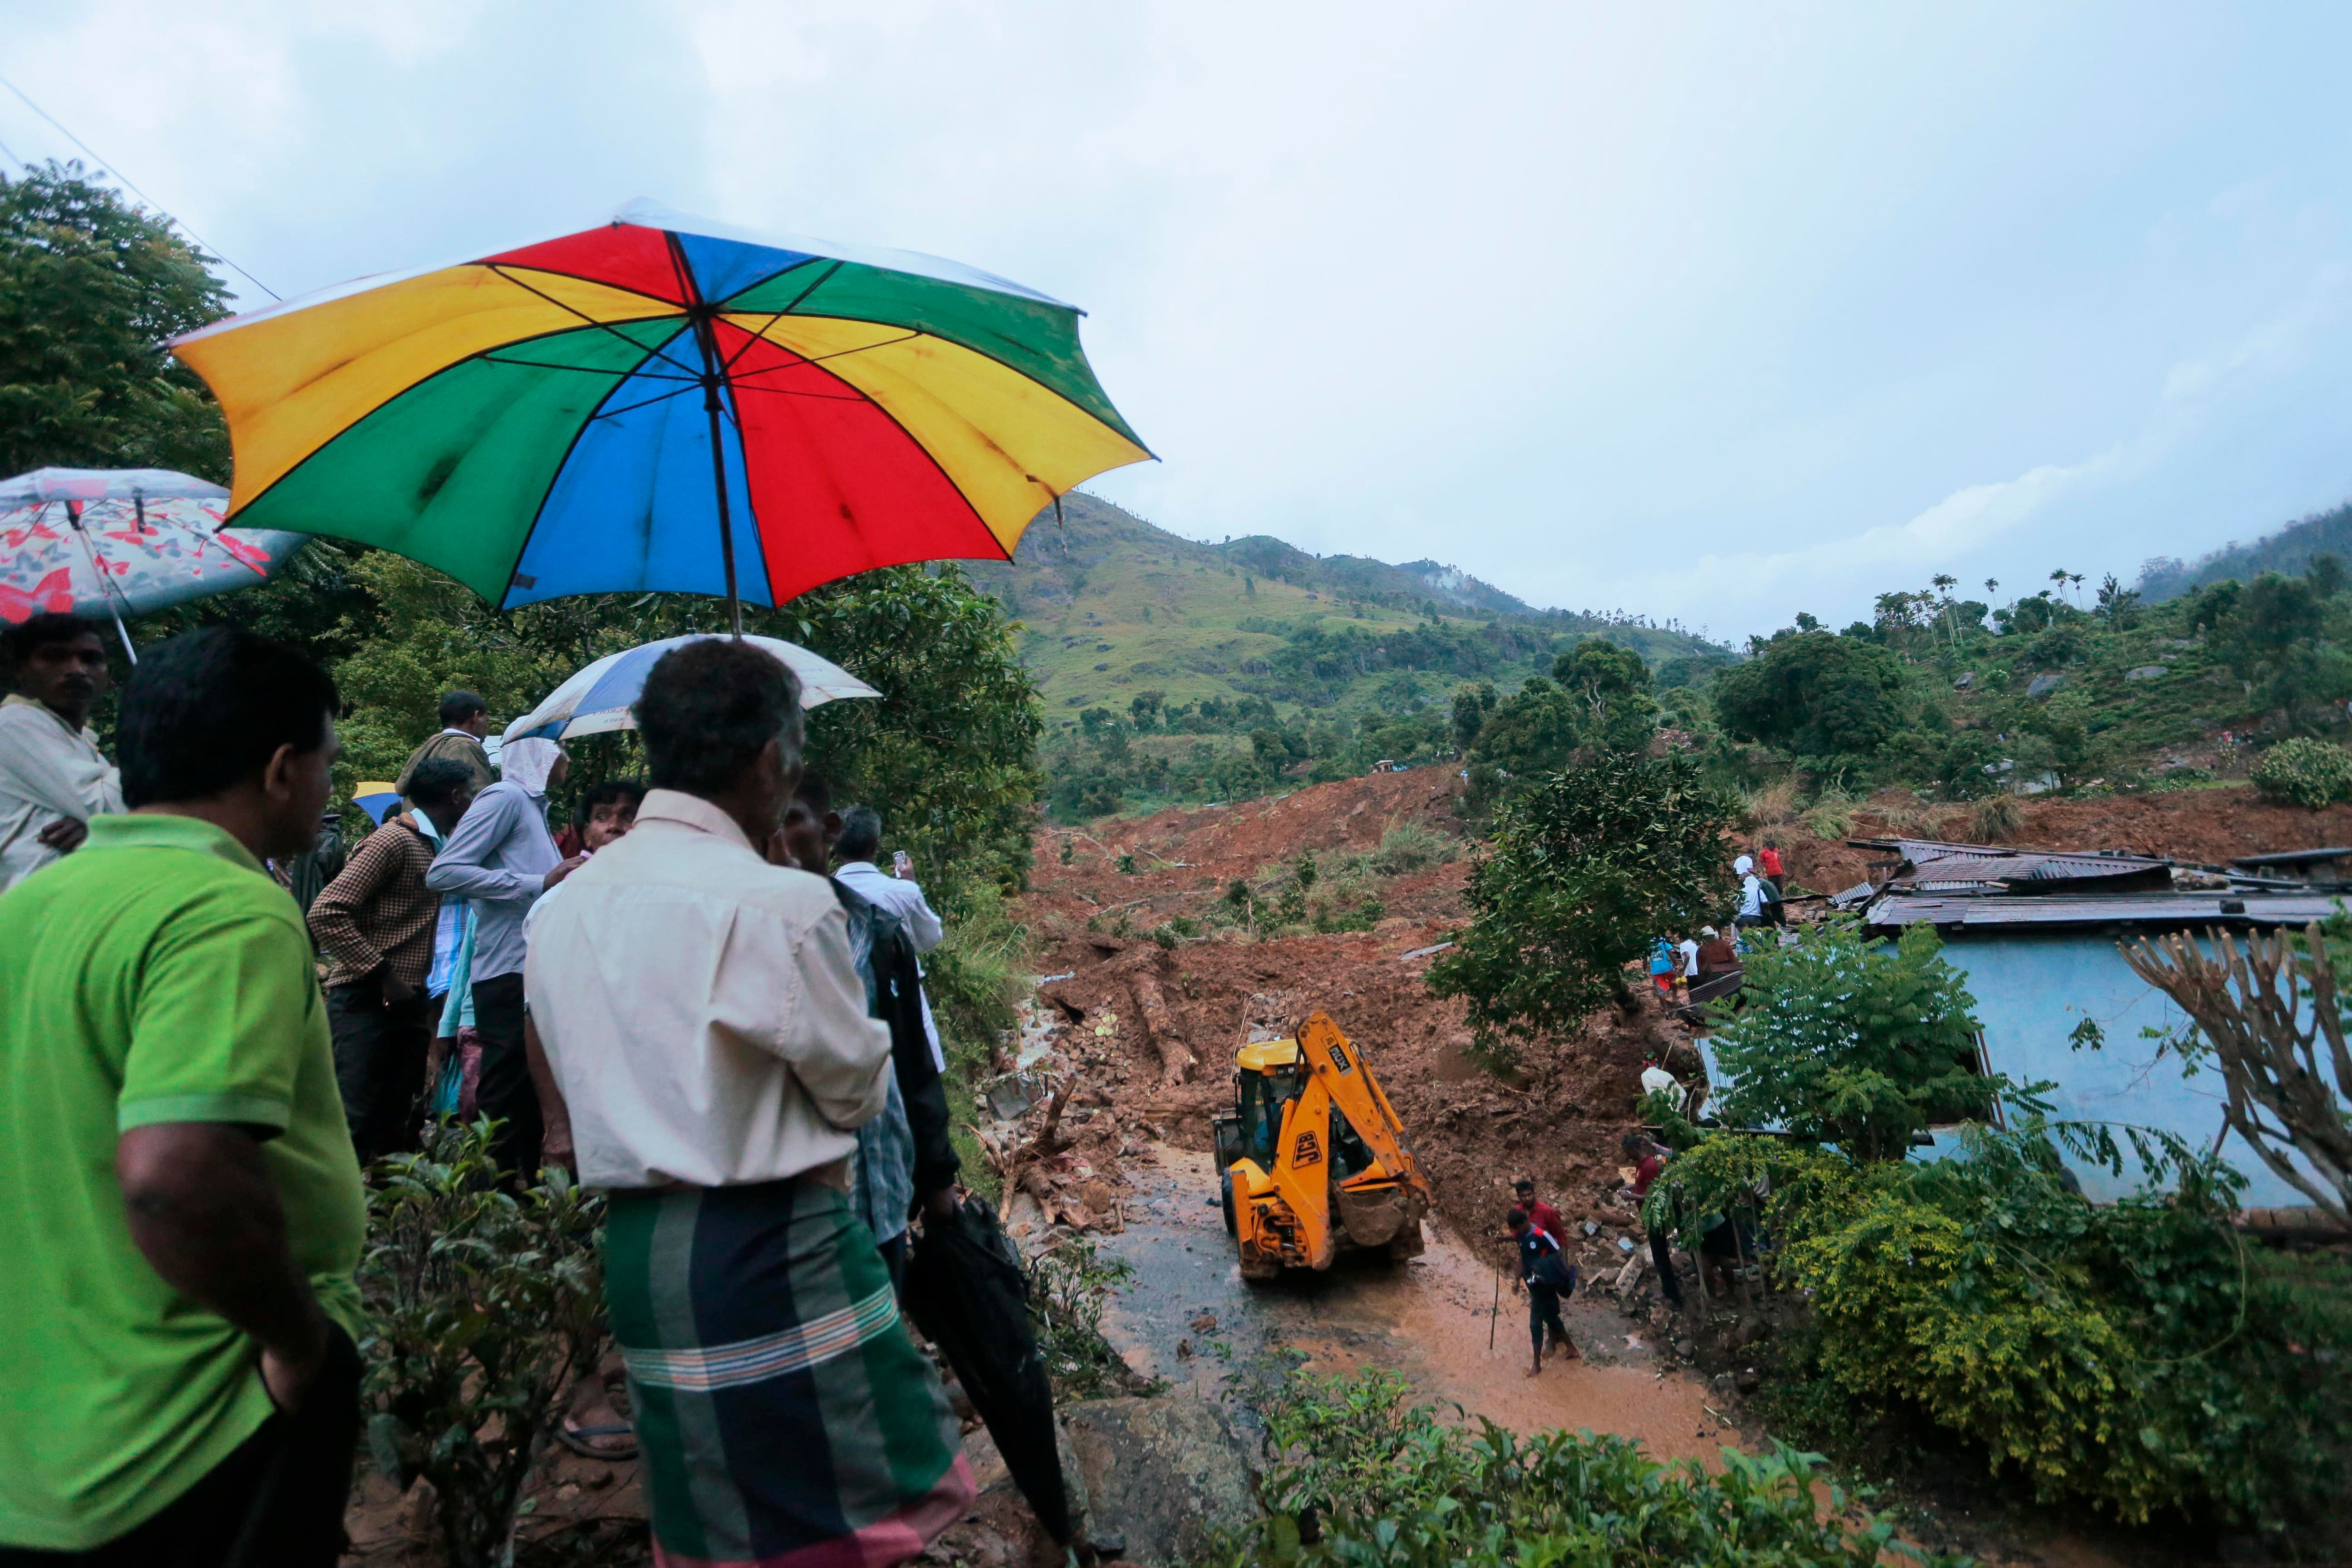 A crowd gathers as an earthmover clears debris caused by mudslide at the Koslanda tea plantation in Badulla district, about 220 kilometers (140 miles) east of Colombo.